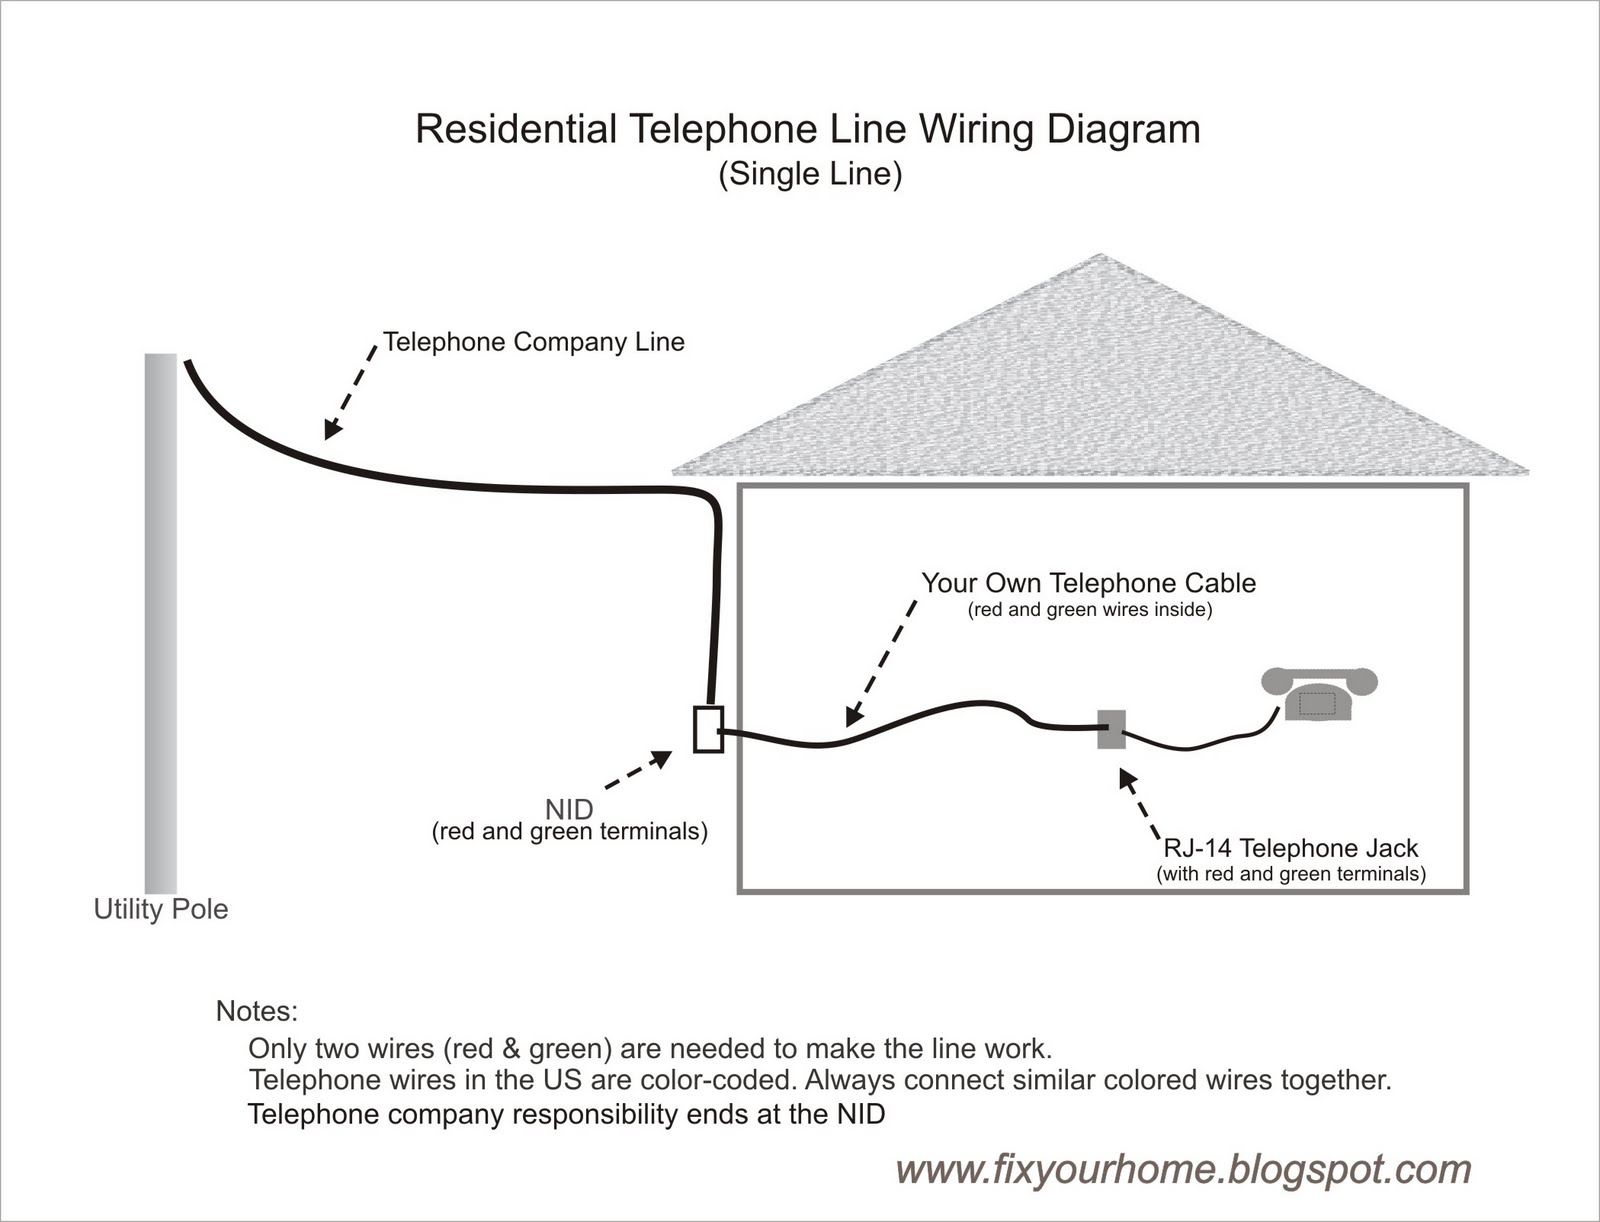 fix your home how to wire your own telephone line [ 1600 x 1222 Pixel ]